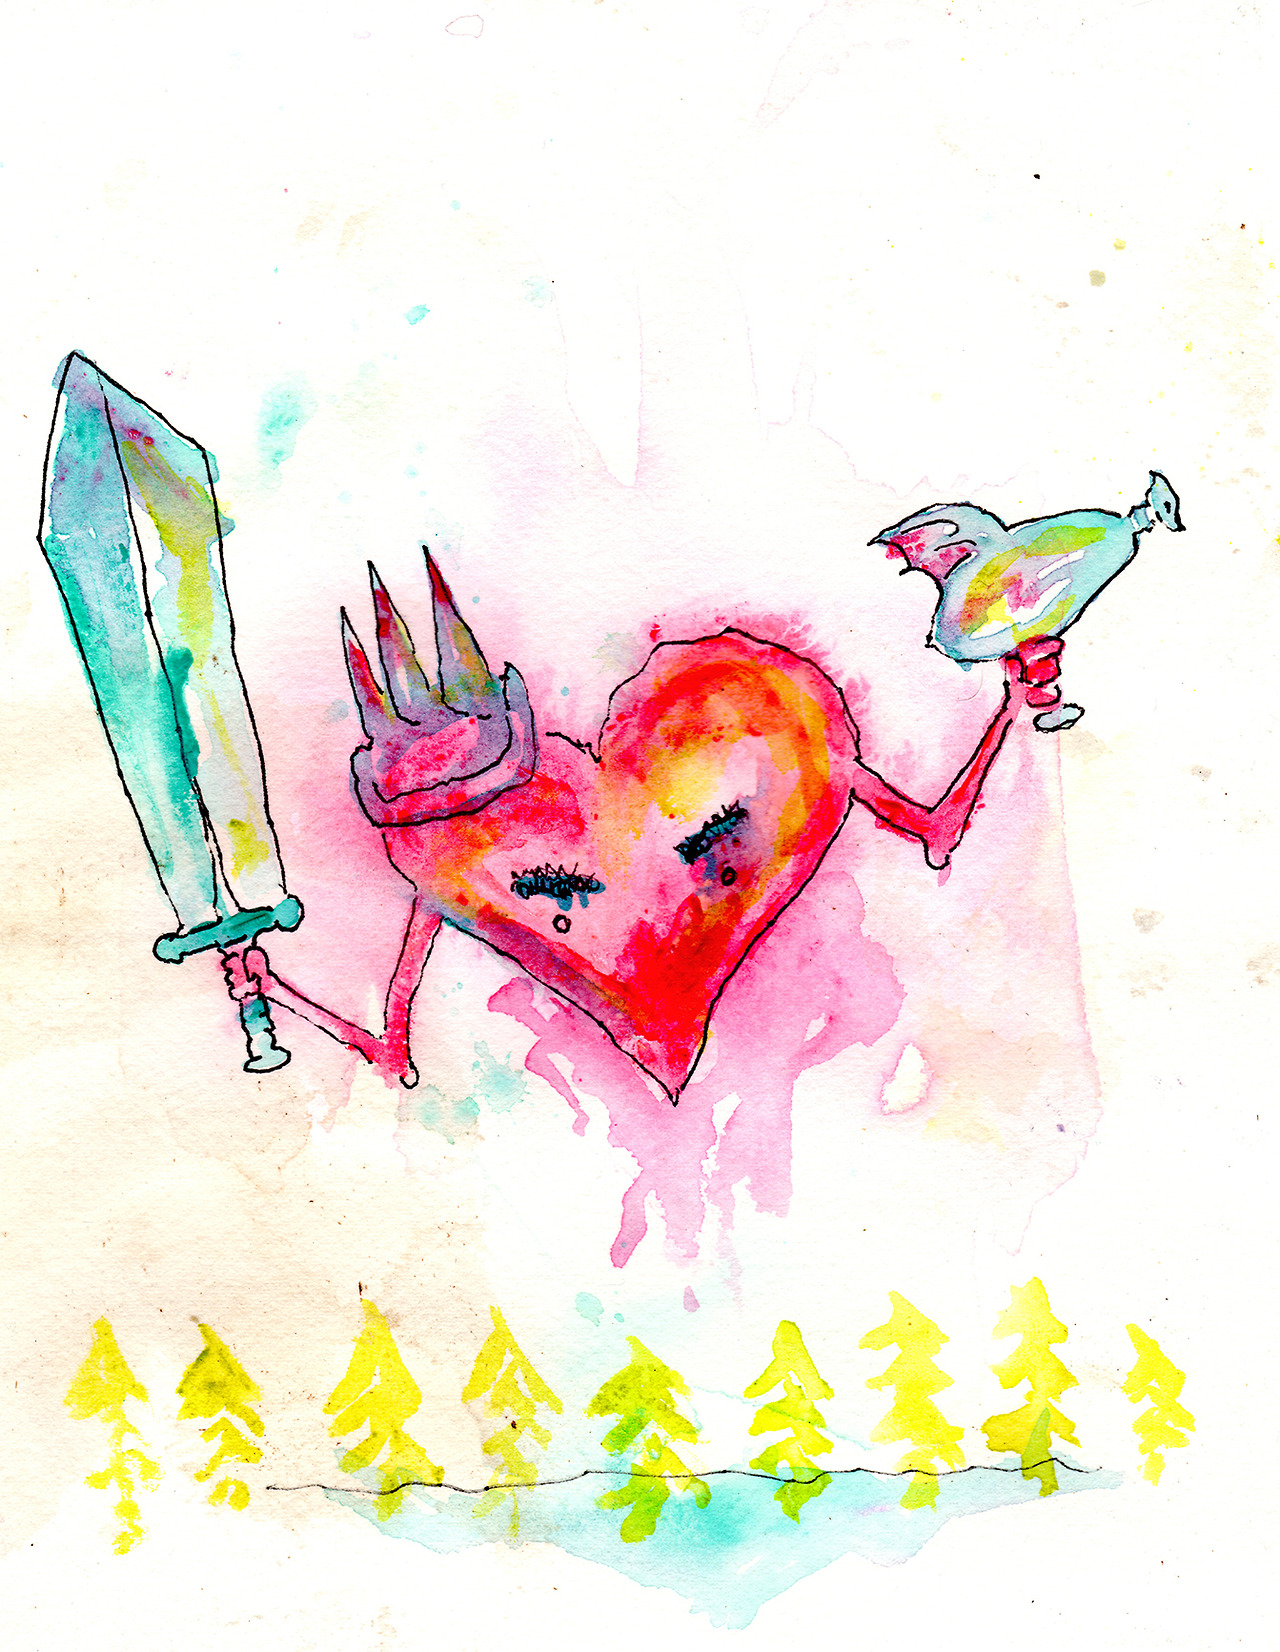 10/11/13 -  The Attack Heart.    Happy Friday, everyone. I'm part of a show that's opening tonight at Revolutions Coffee in Seattle. I hope to see you all there.    Buy this piece here -  http://taylorwinder.bigcartel.com    SOLD.    Prints of it here -  http://society6.com/taylorwinder